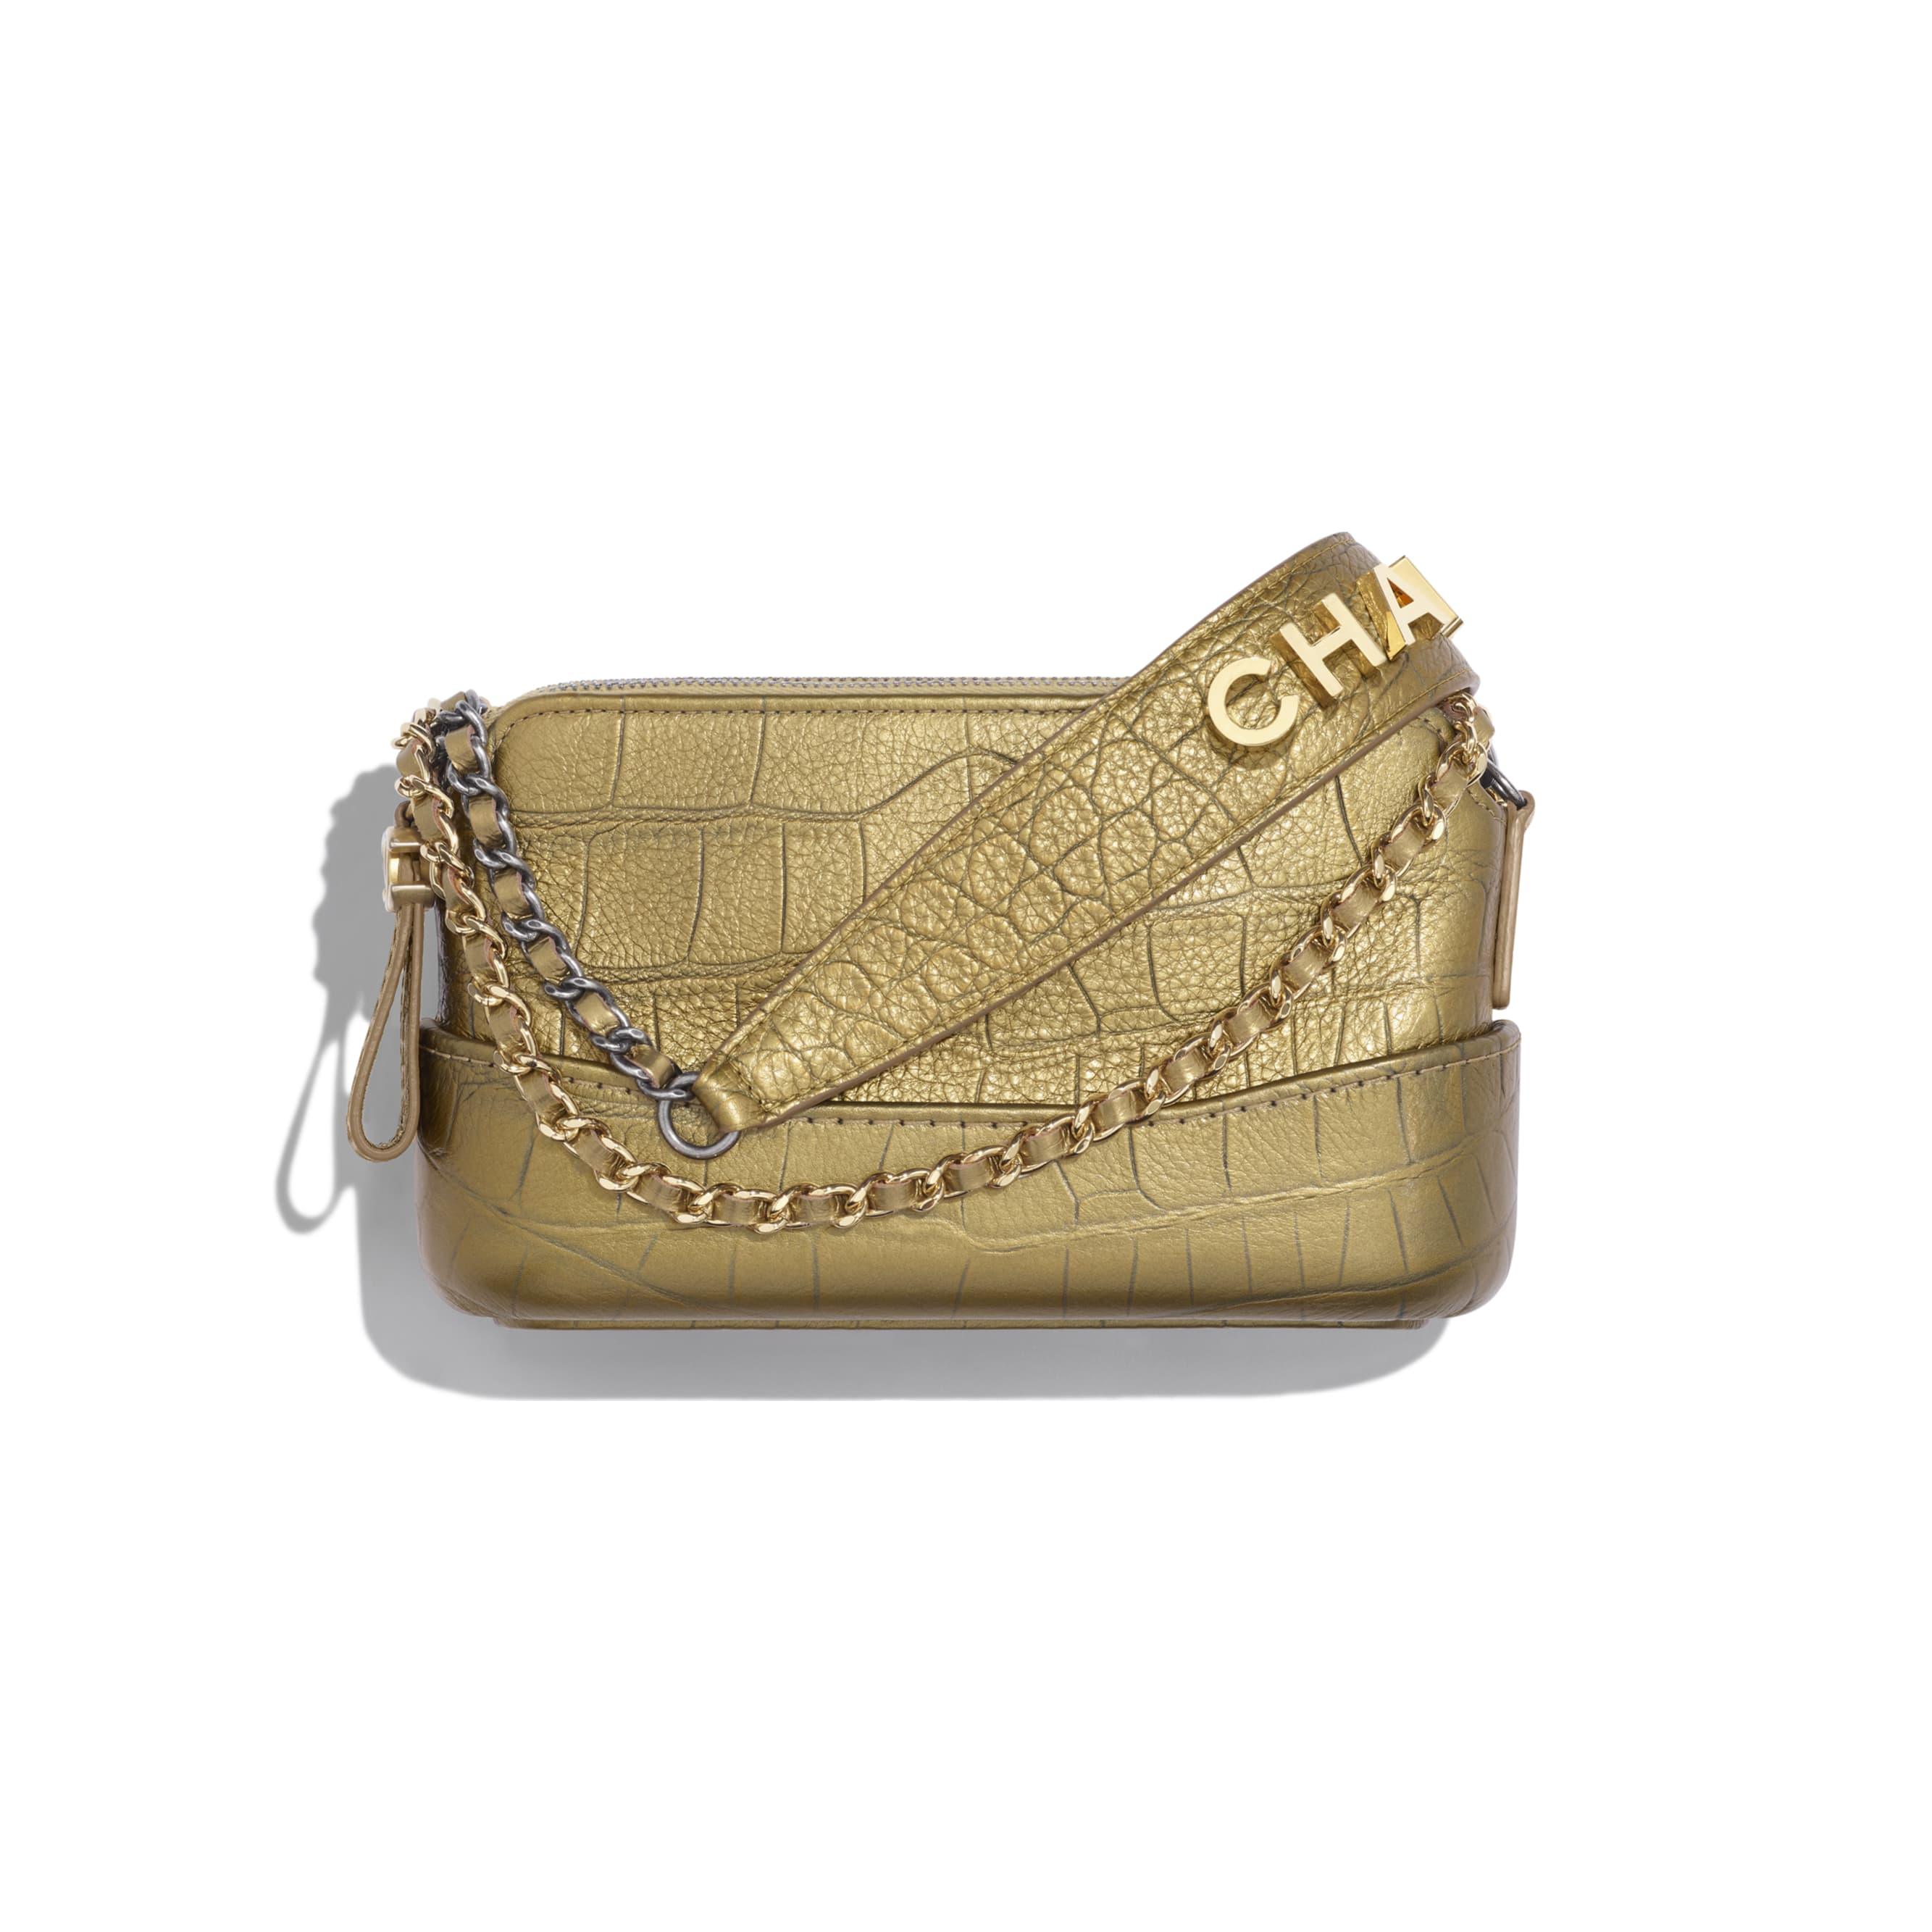 Clutch With Chain - Gold - Metallic Crocodile Embossed Calfskin, Gold-Tone & Silver-Tone Metal - CHANEL - Default view - see standard sized version